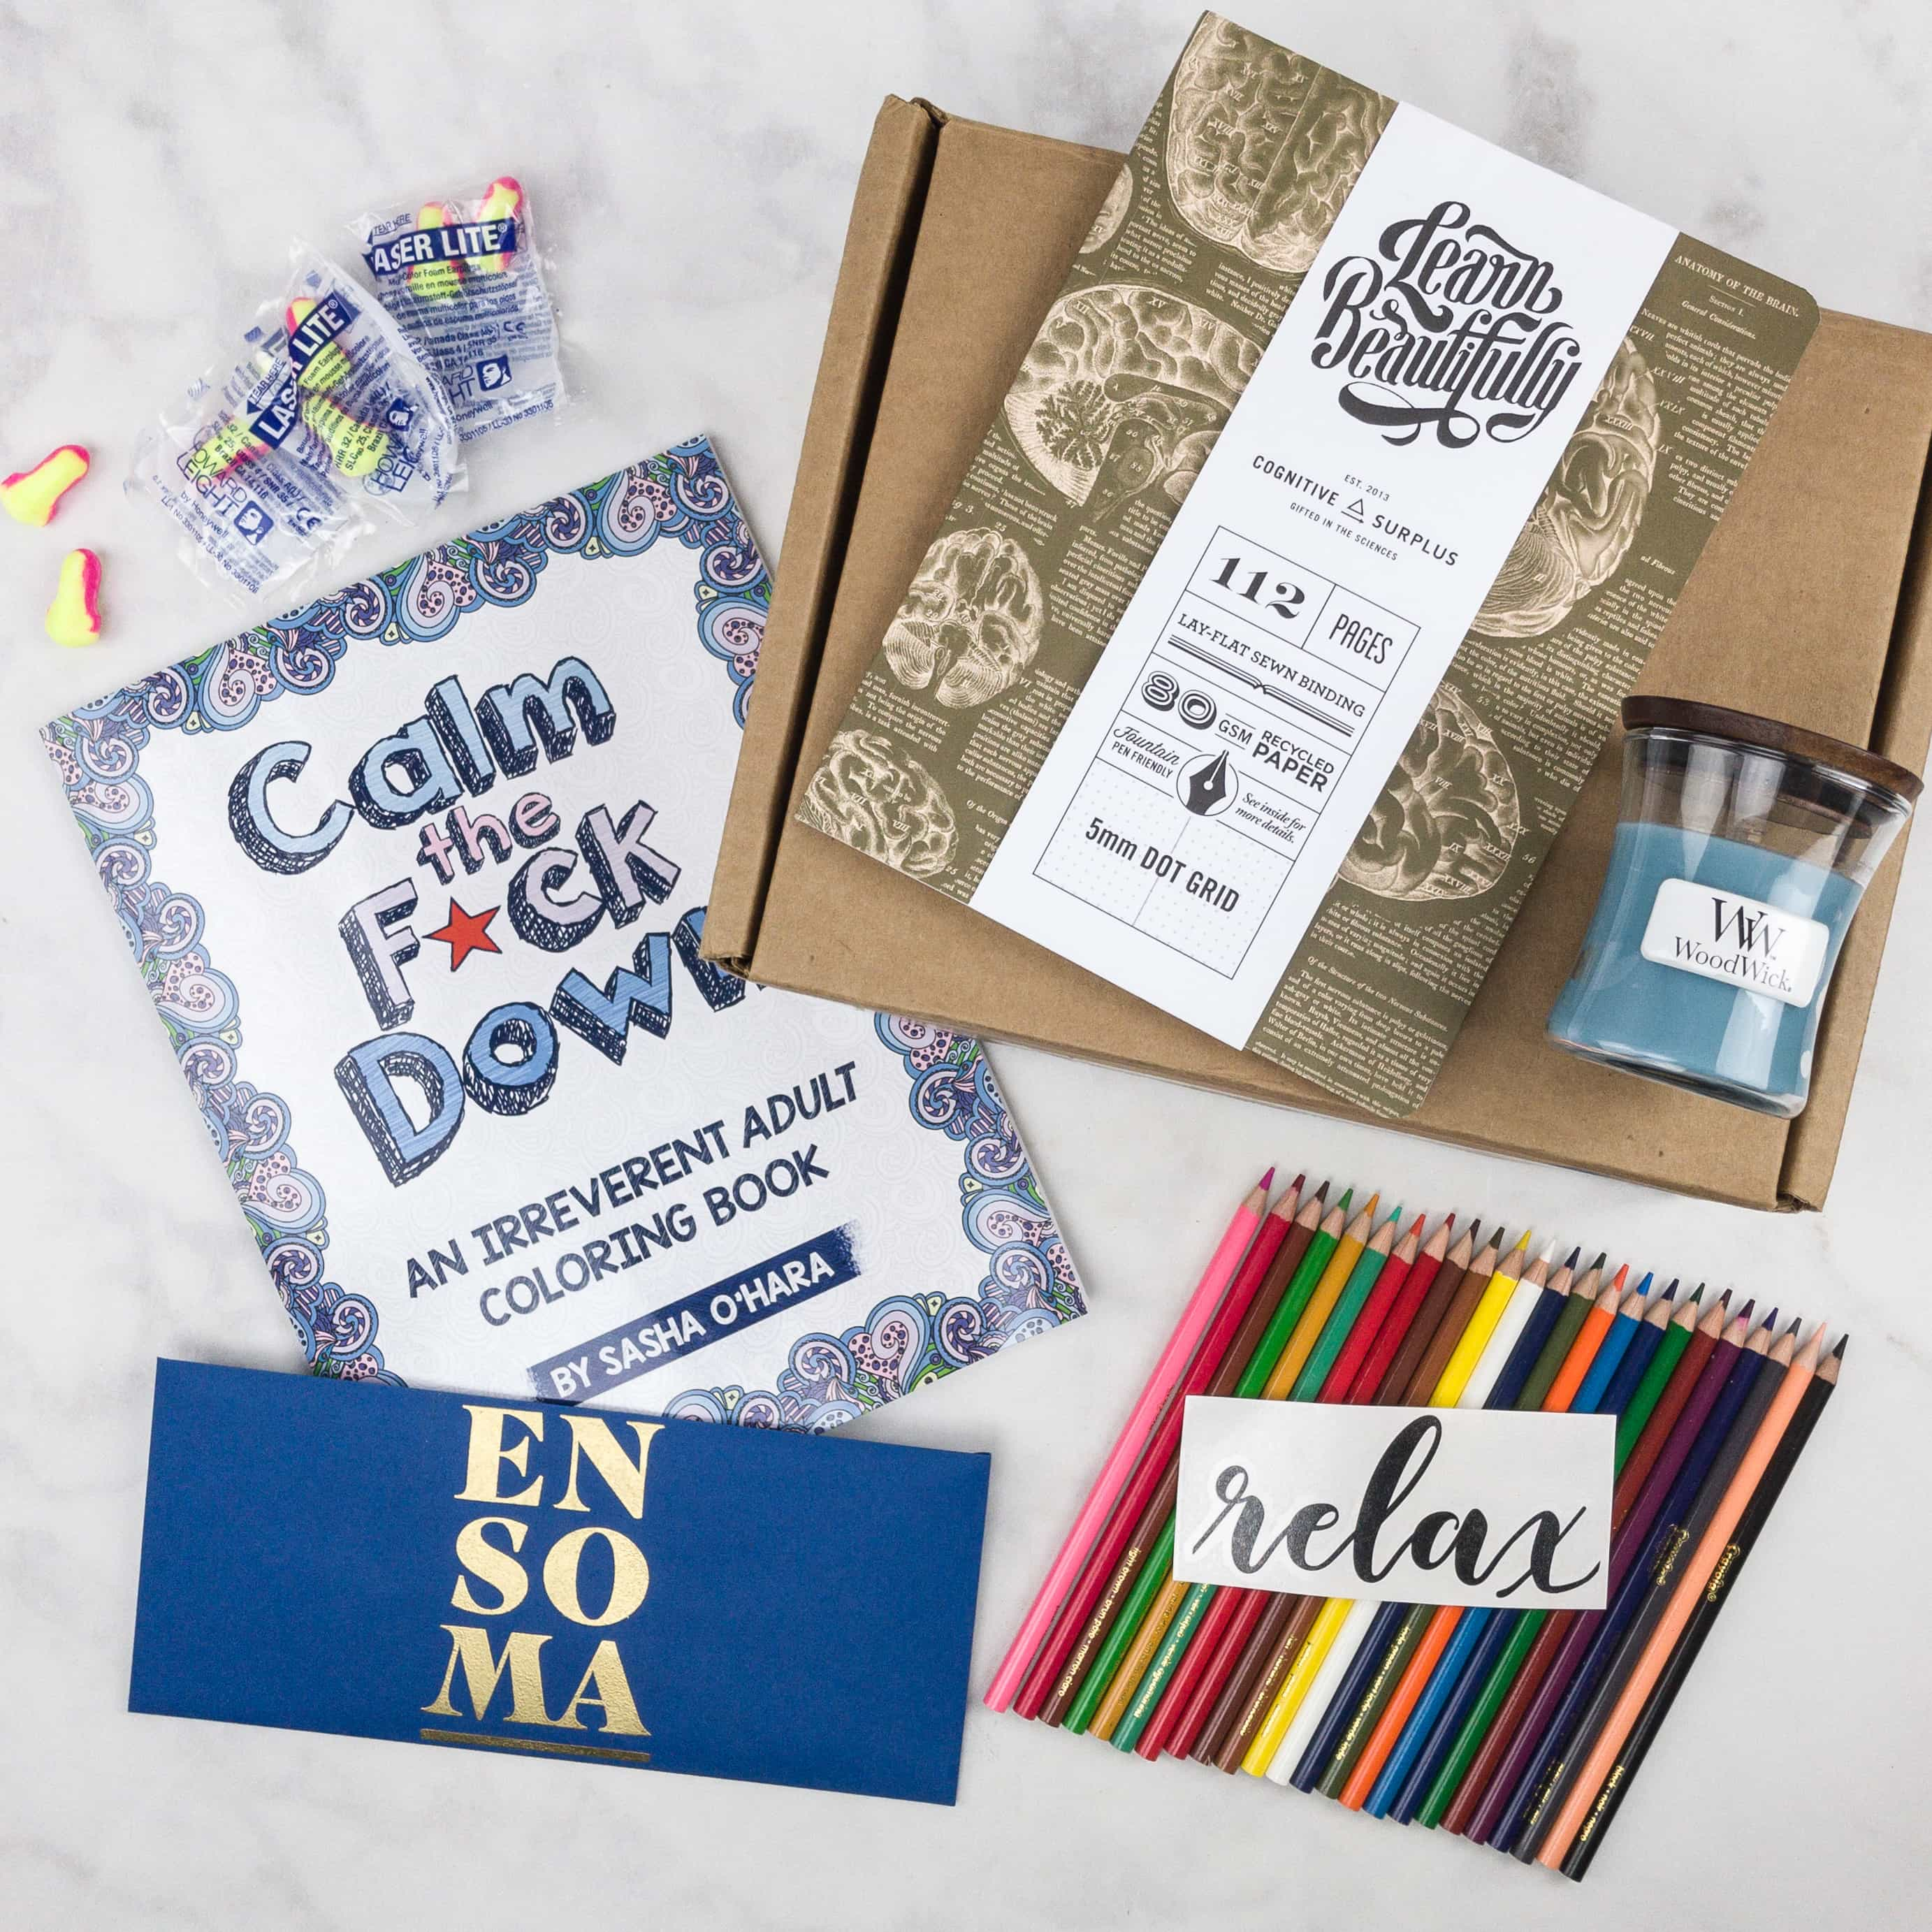 ENSOMA Box August 2017 Subscription Box Review